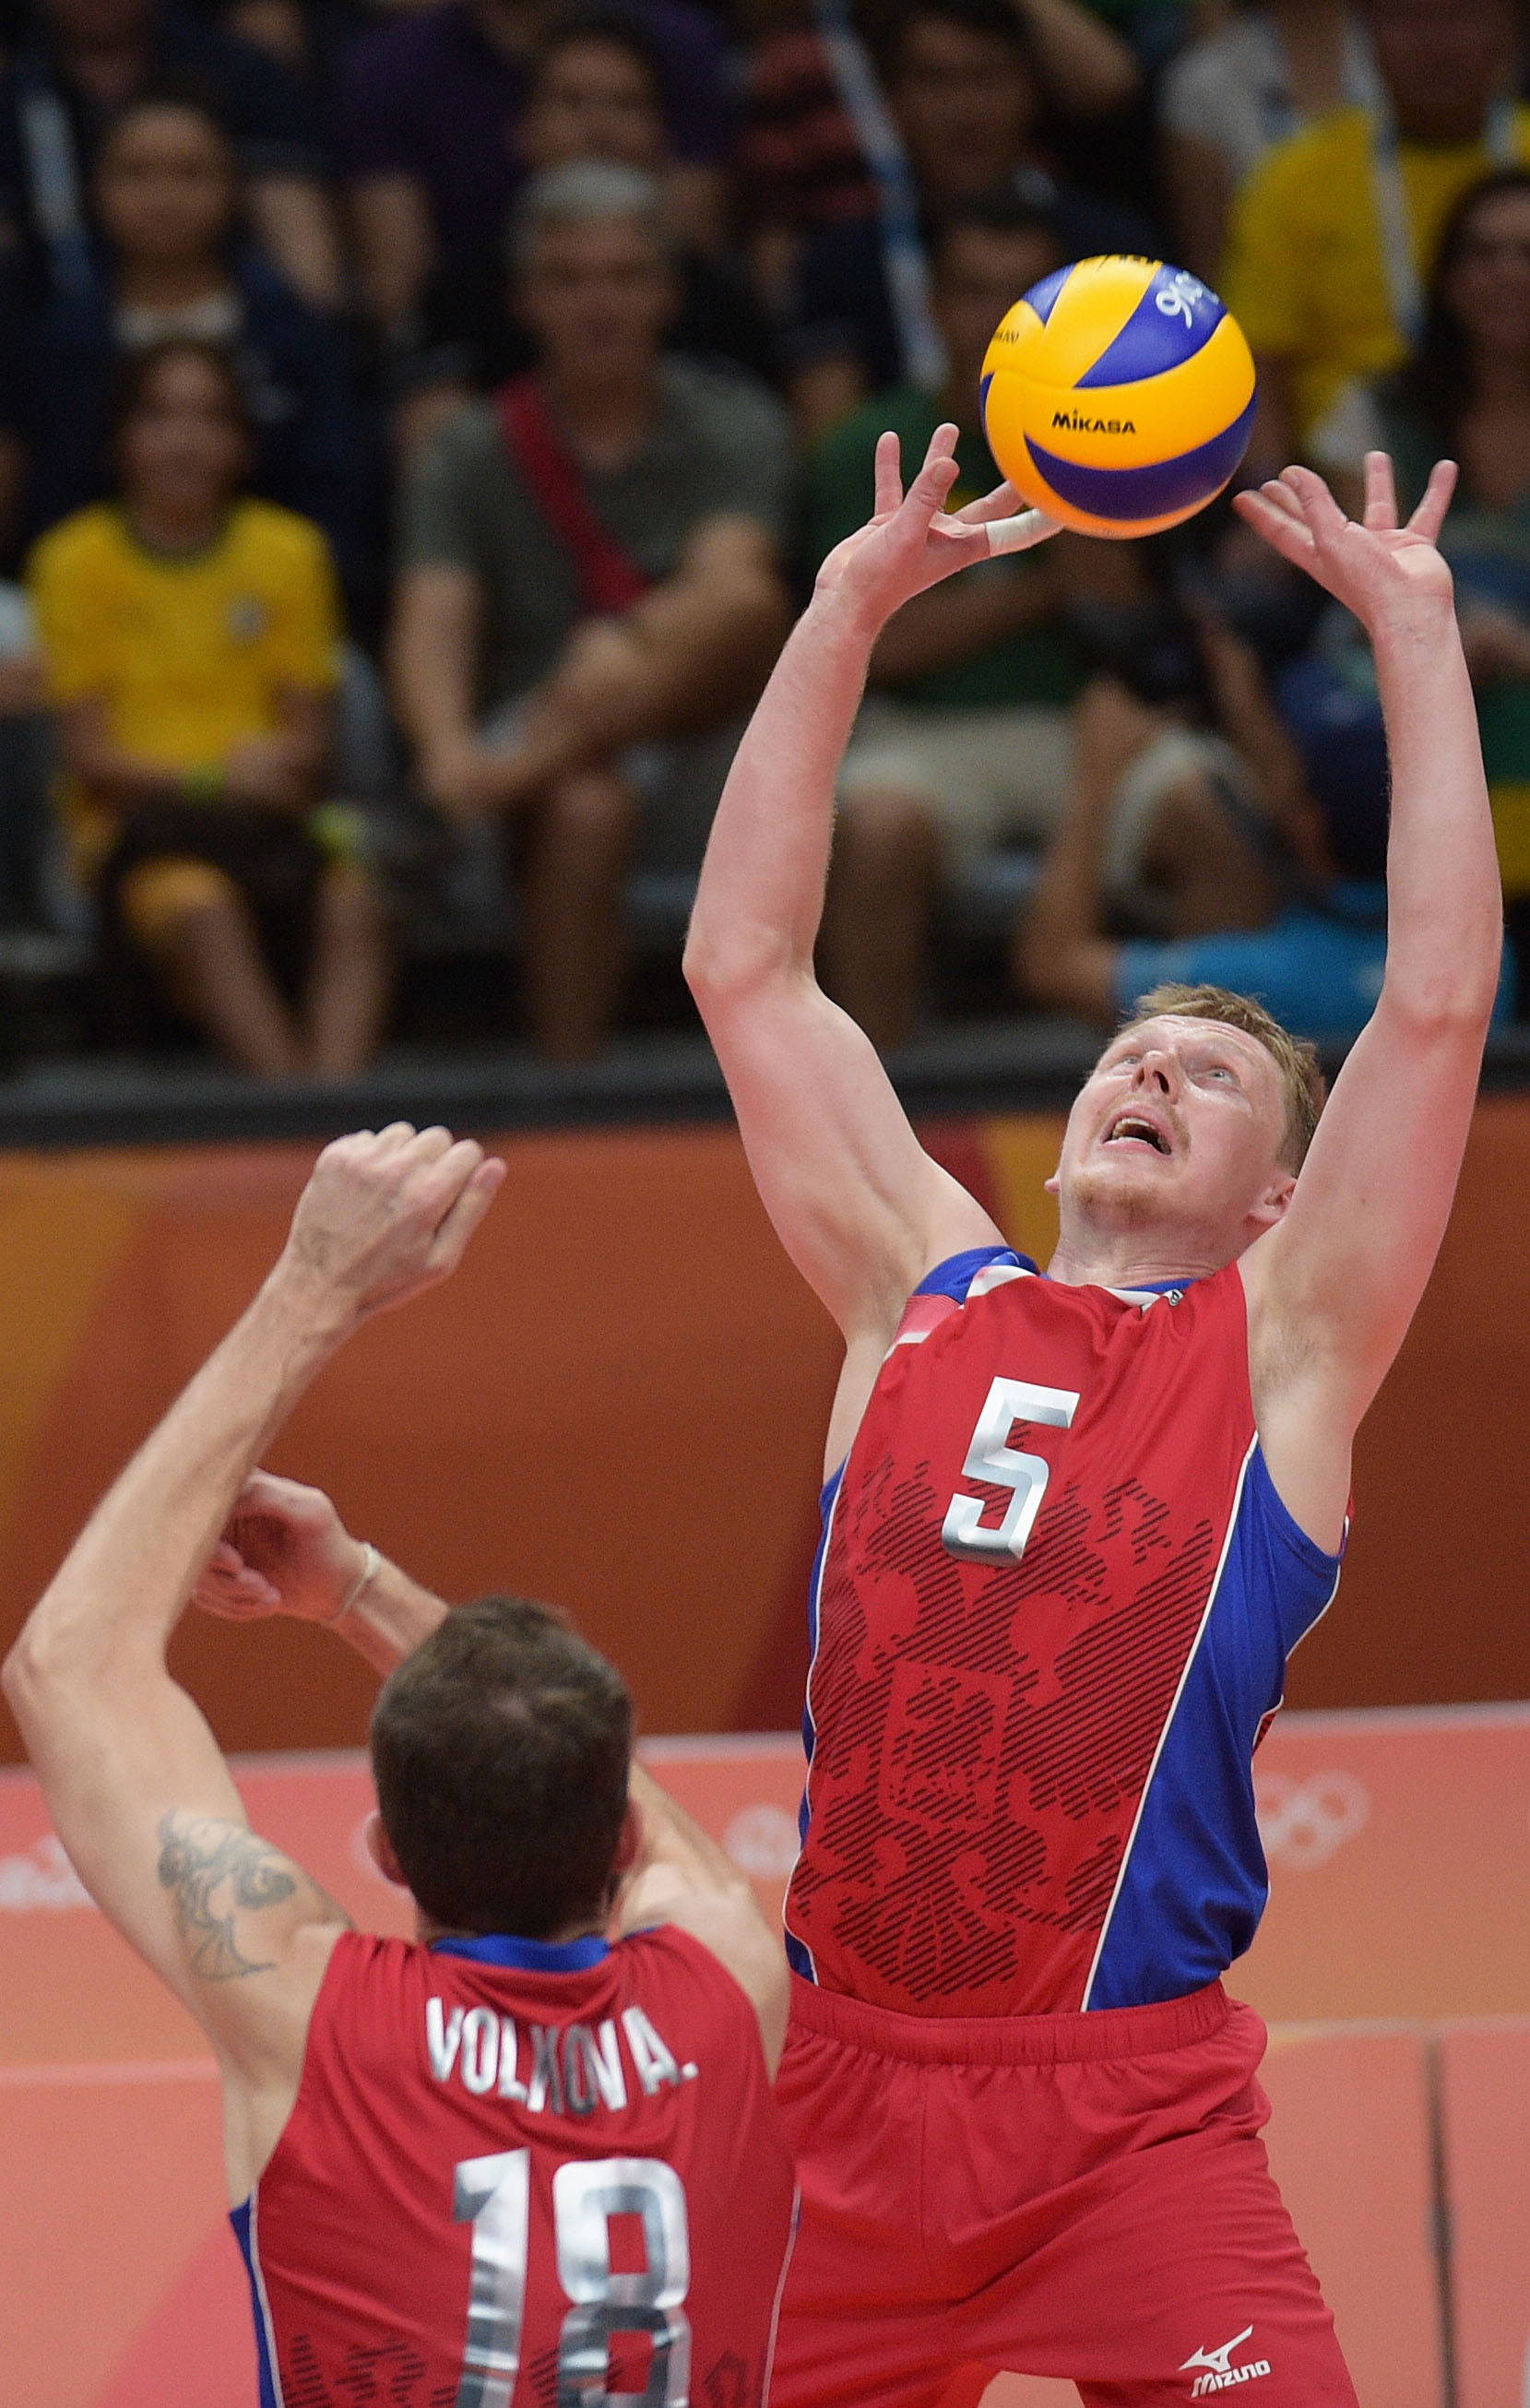 http://www.fivb.org/Vis2009/Images/GetImage.asmx?No=201653567&maxSize=960